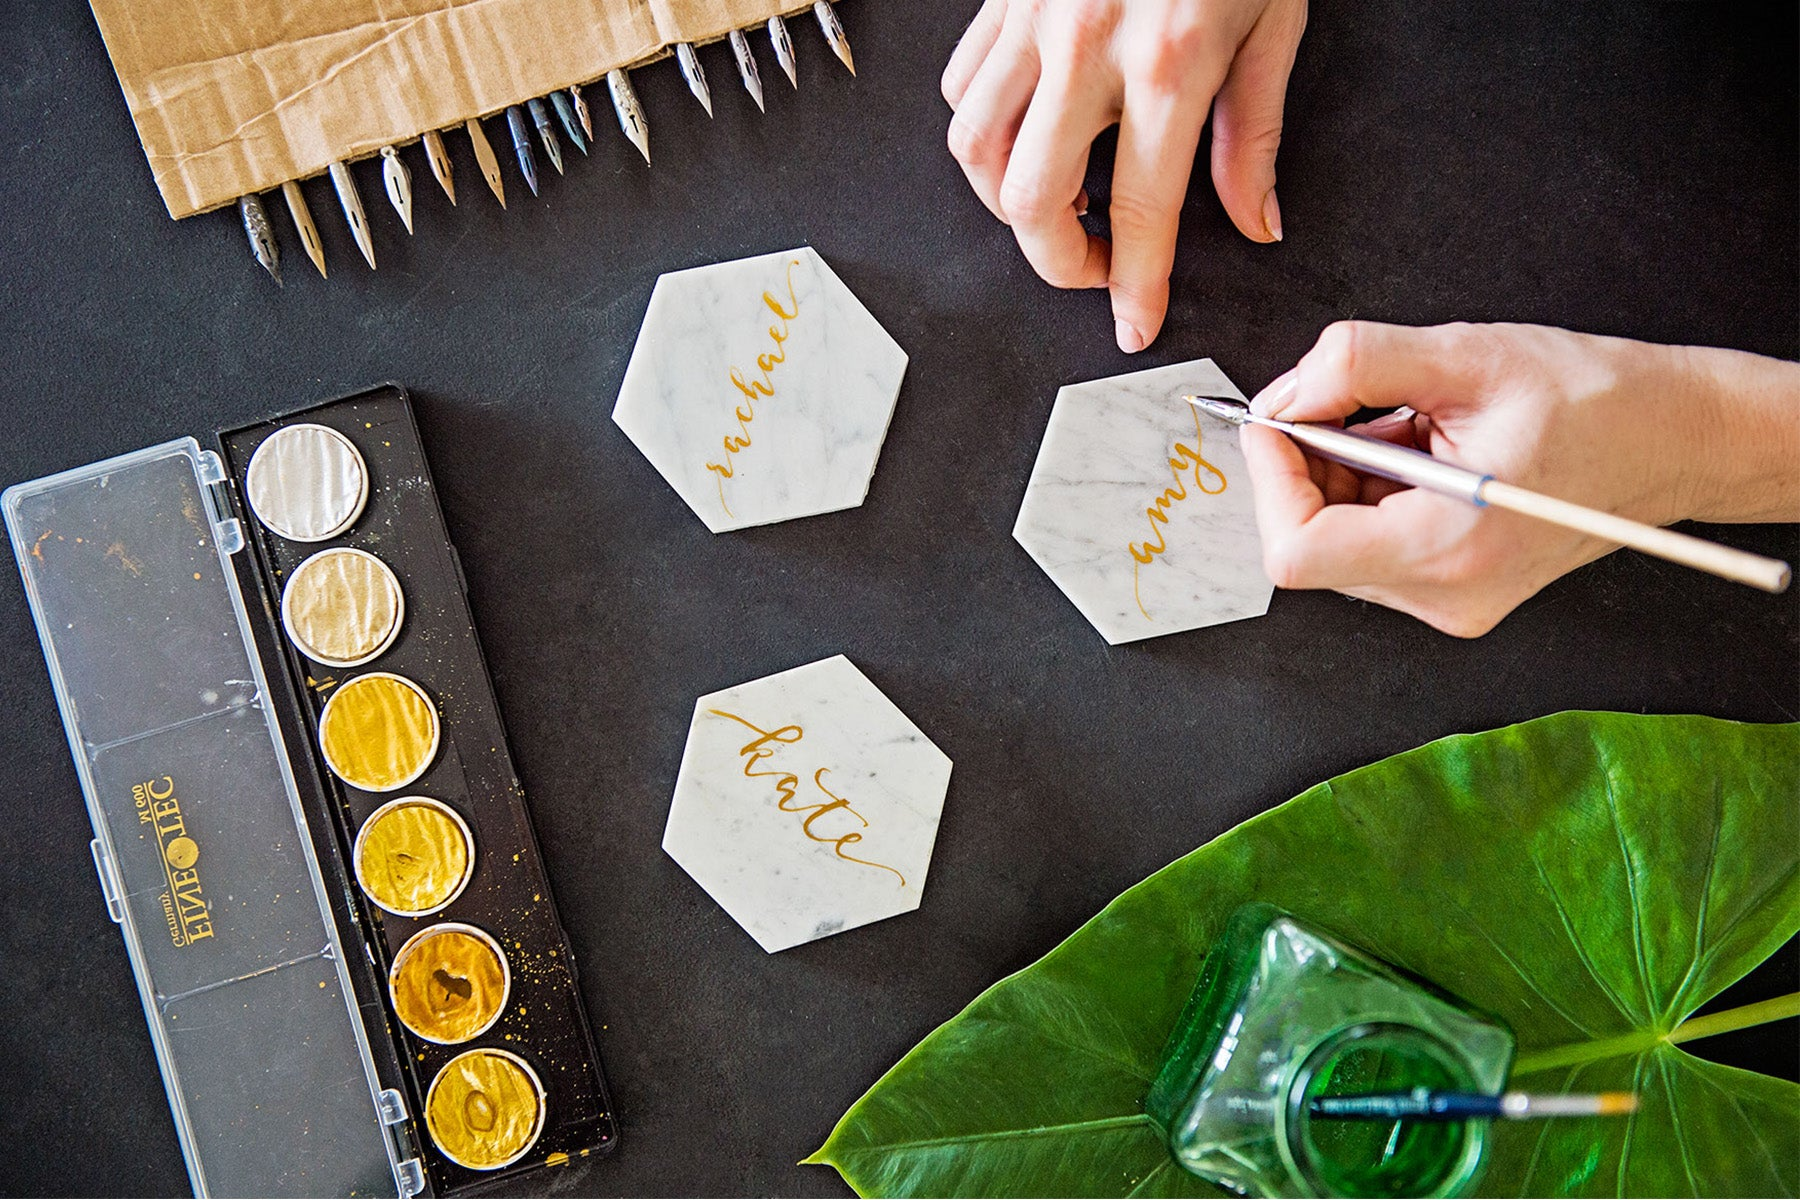 Modern calligraphy workshop by Tania Hearn at Inkify, Gold Coast